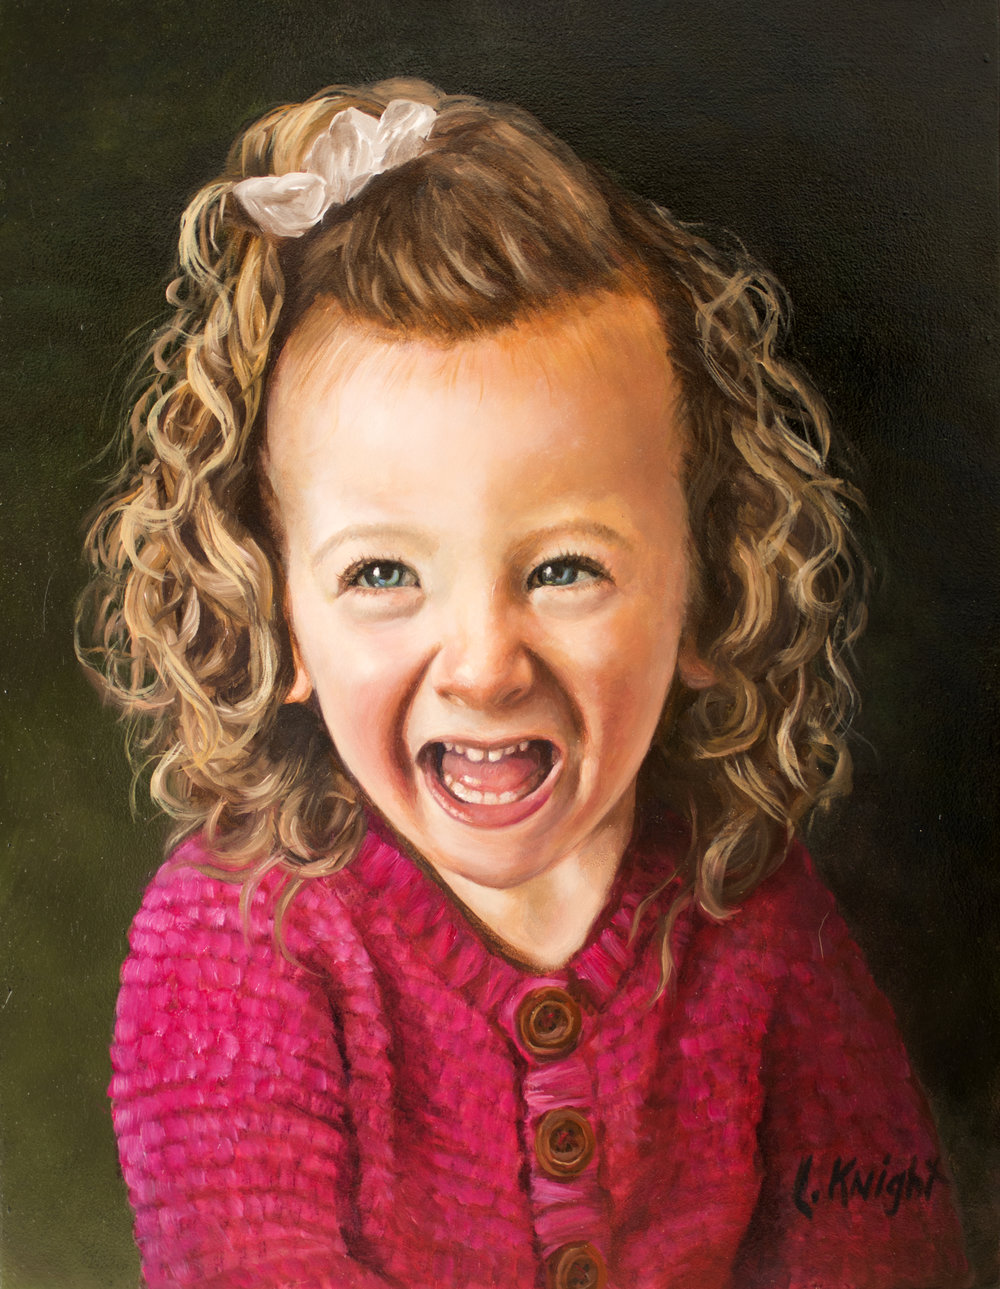 Laurel Knight, one of Portrait Connection's first portrait artists, has created several beautiful pieces to help bring comfort and light to families across the nation.